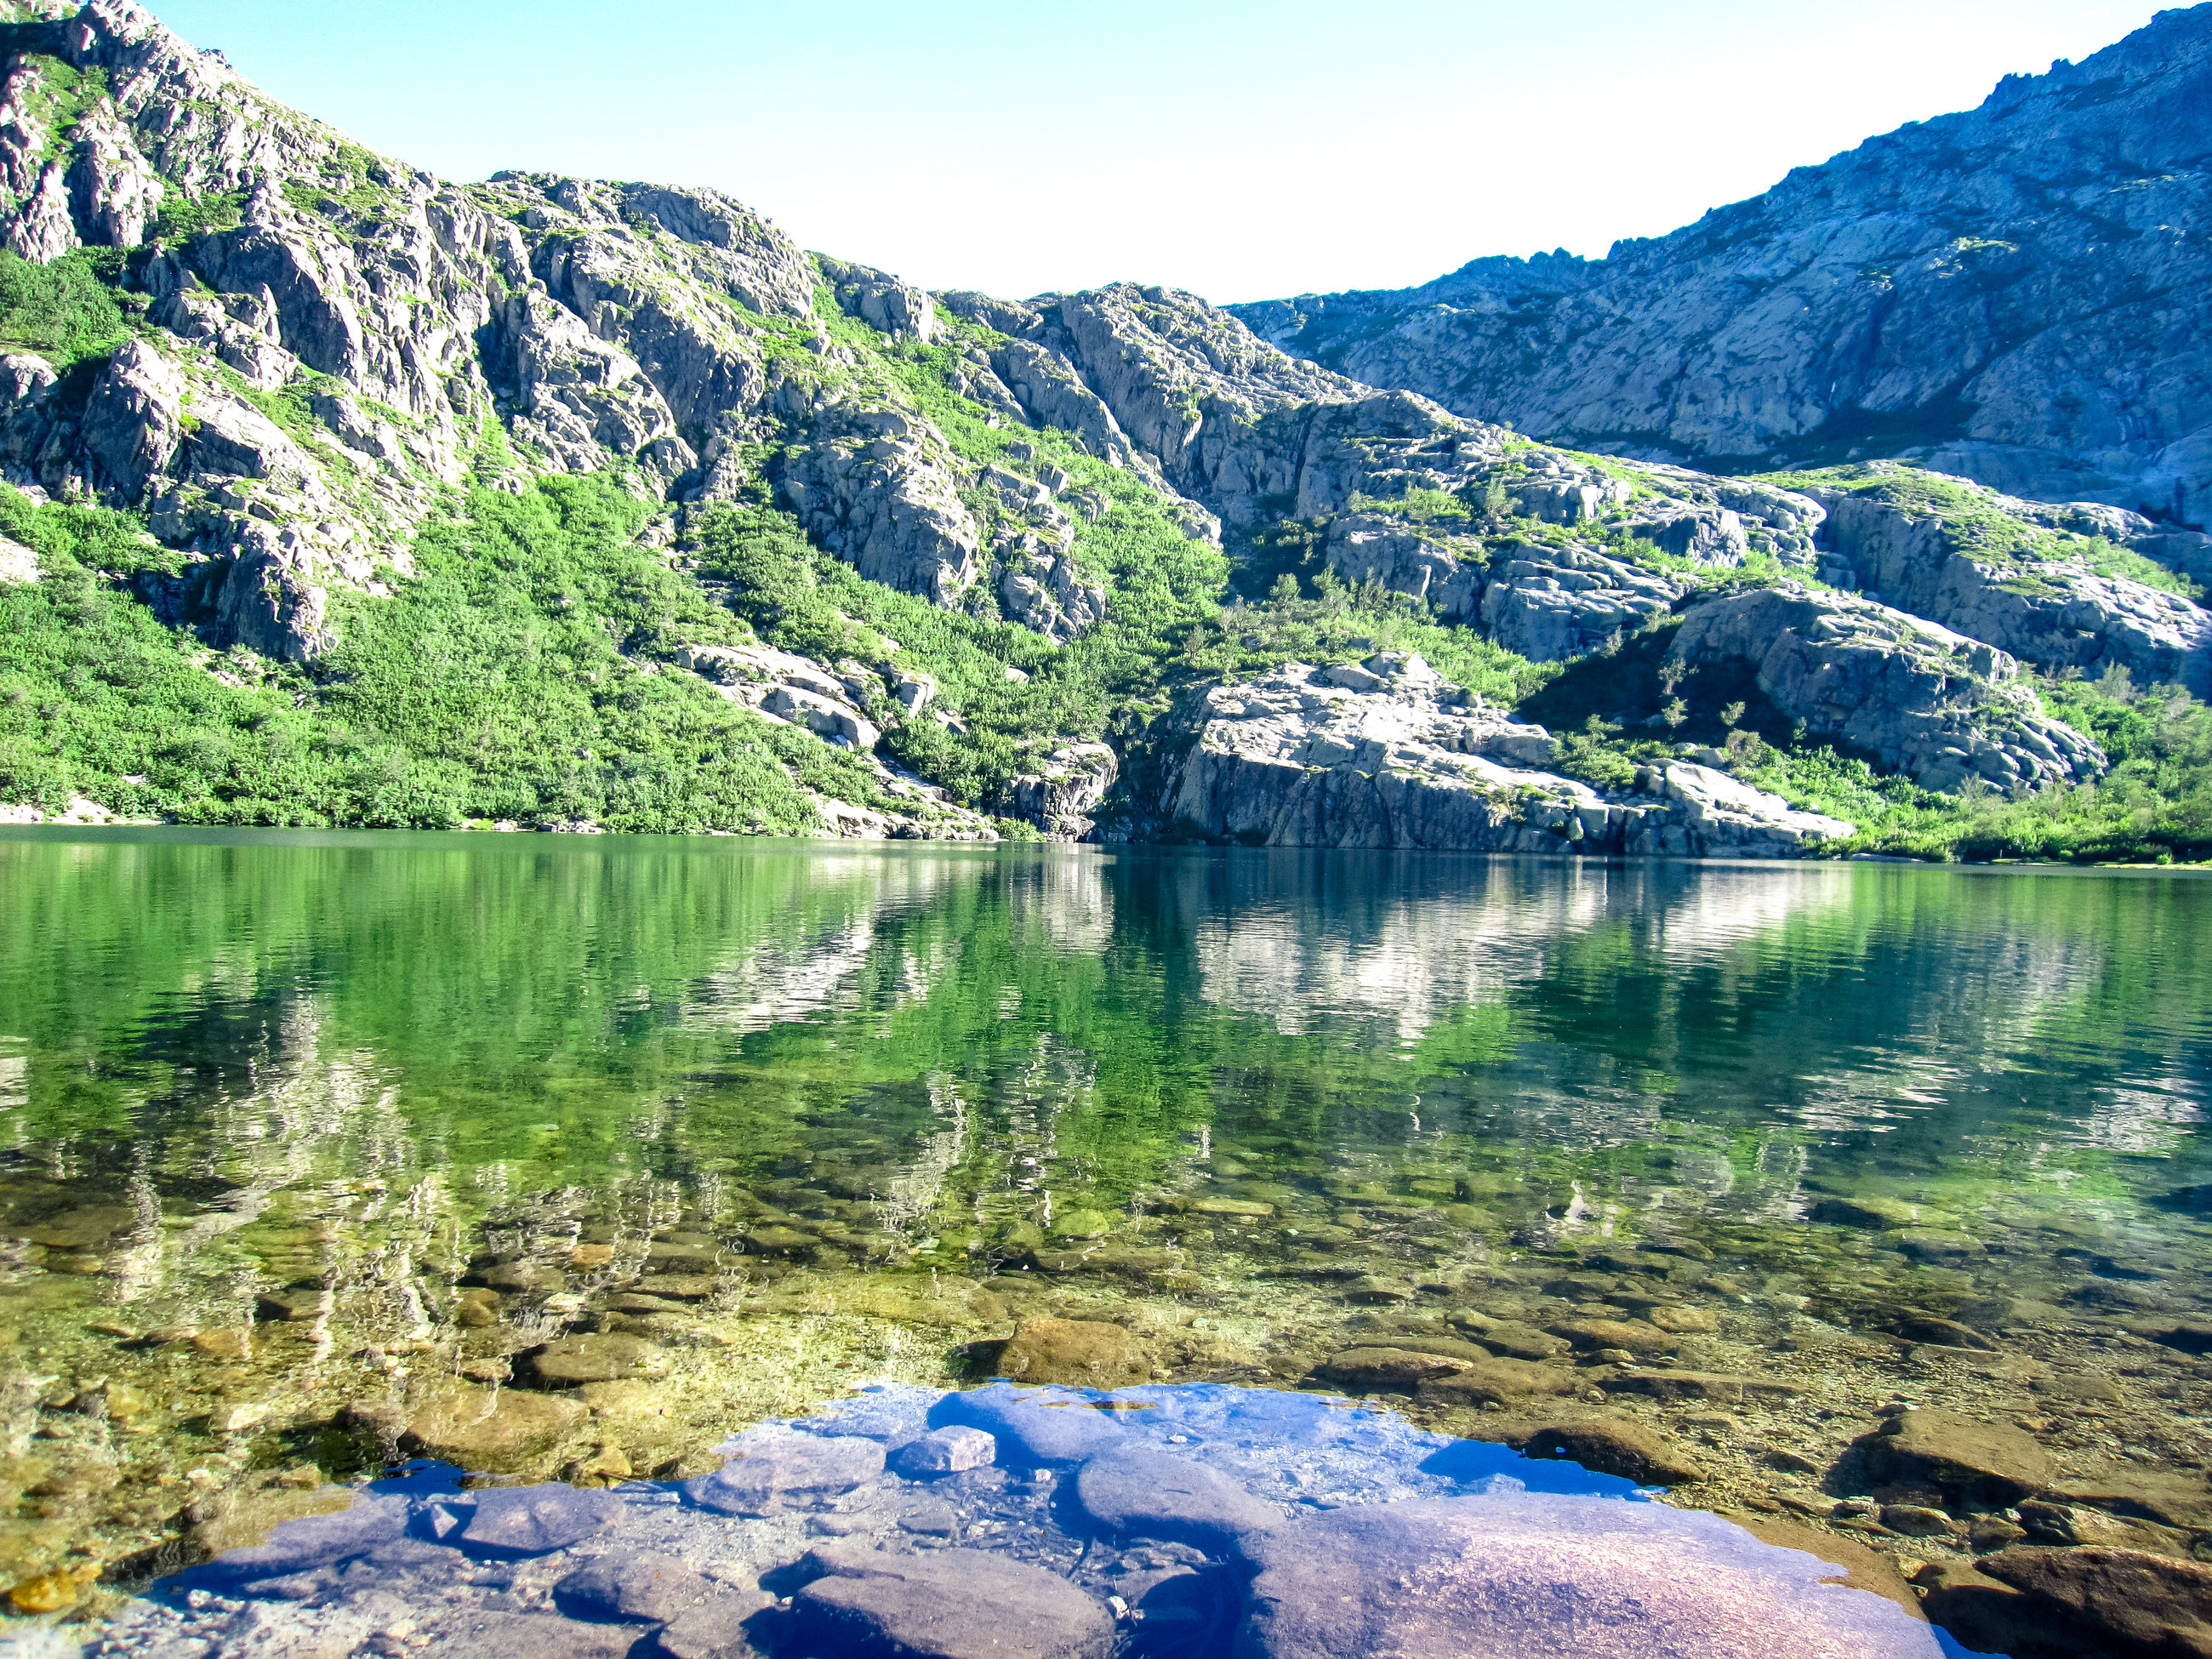 water, lake, beauty in nature, scenics - nature, tranquility, tranquil scene, mountain, reflection, nature, rock, day, no people, sky, idyllic, non-urban scene, solid, plant, rock - object, outdoors, formation